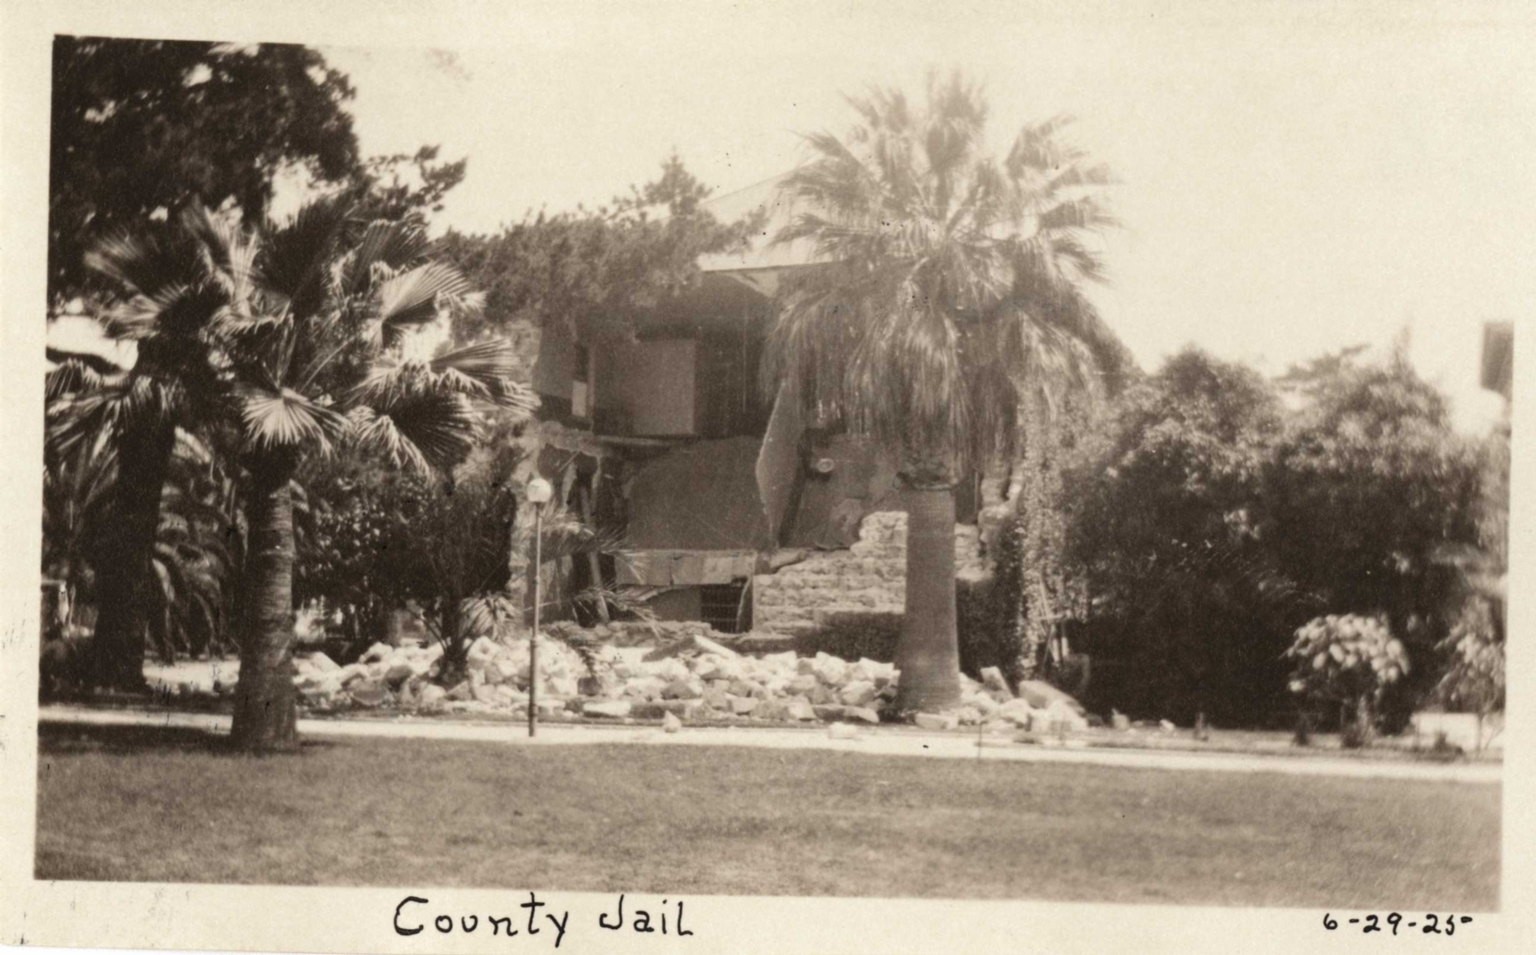 Santa Barbara 1925 Earthquake damage - County Jail